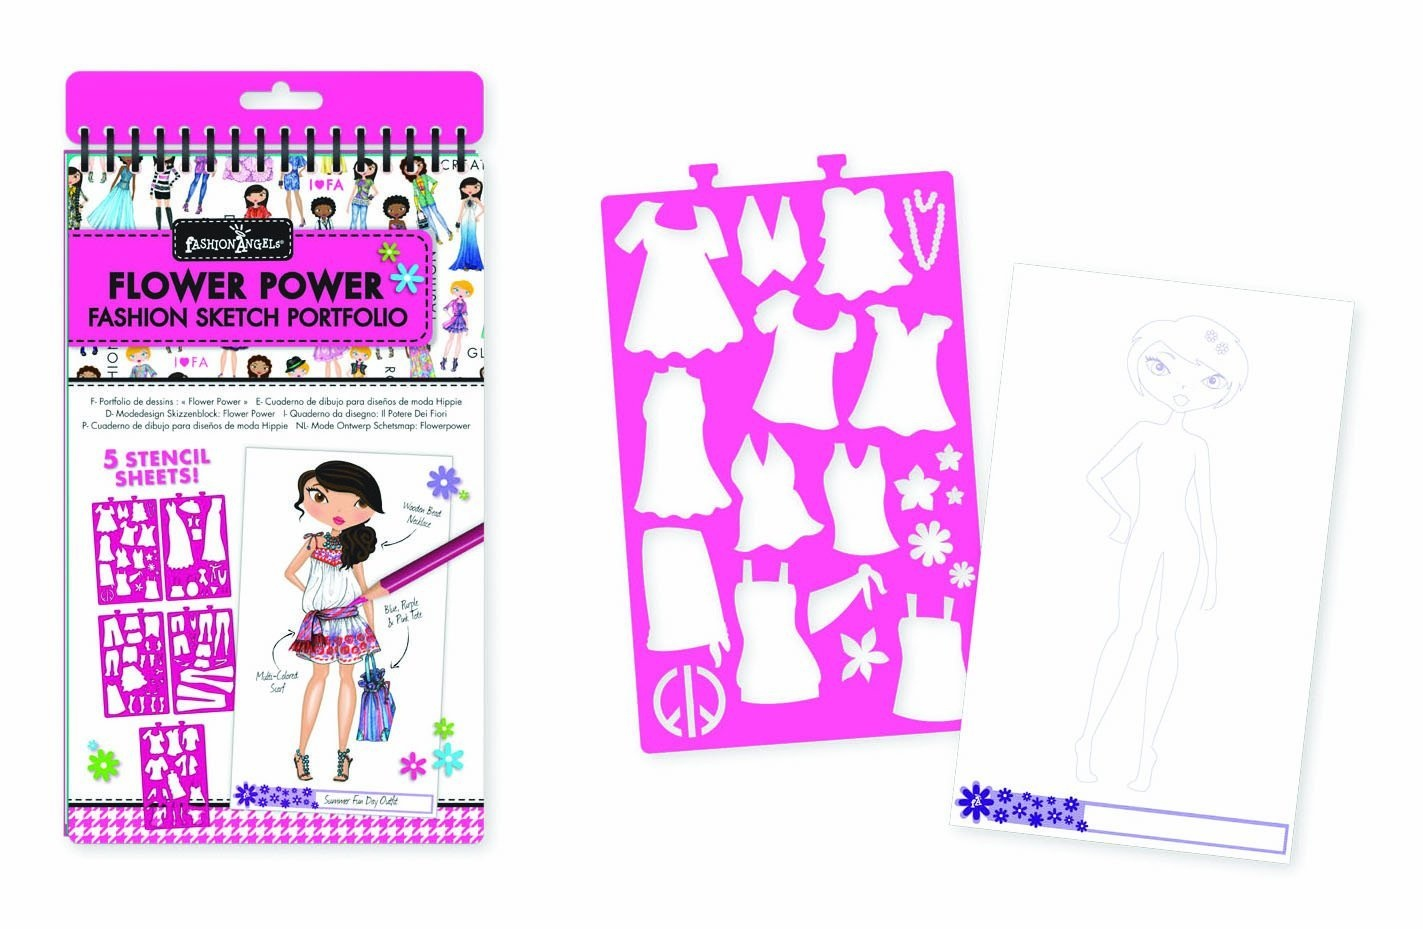 Fashion Angels 11476 Flower Power Mini Design Portfolio Sketchbooks By Fashion Angels Shop Online For Toys In The United States